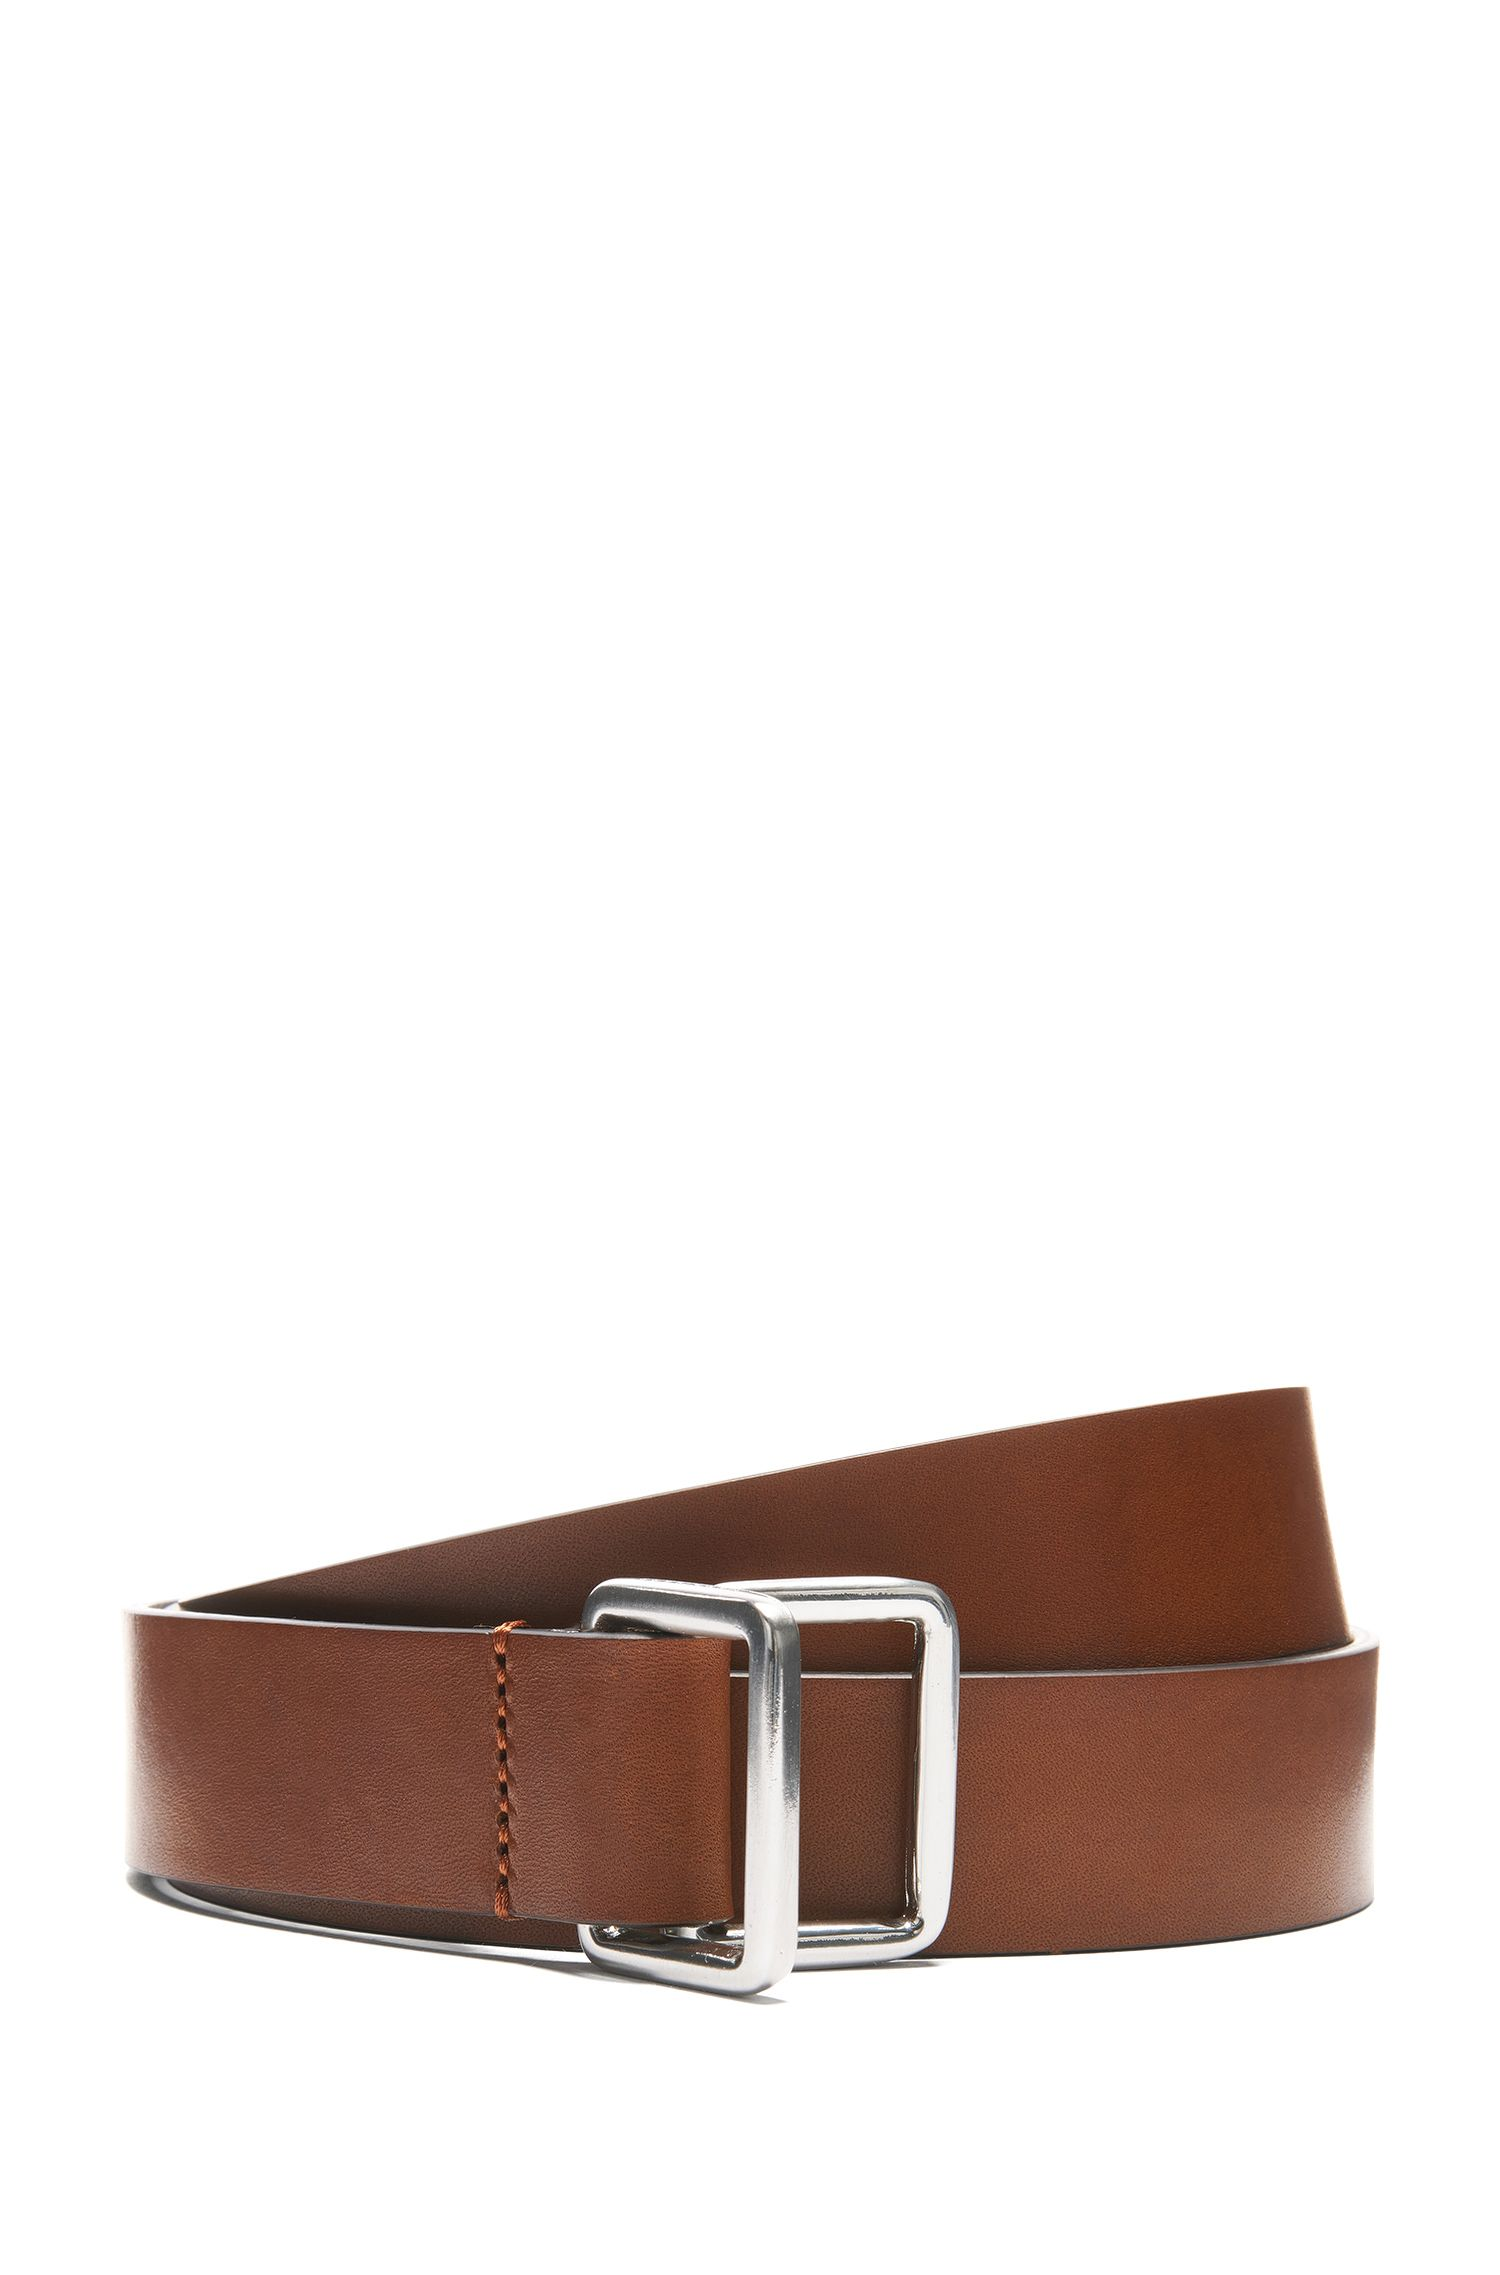 Smooth Italian-leather belt with double D-ring closure